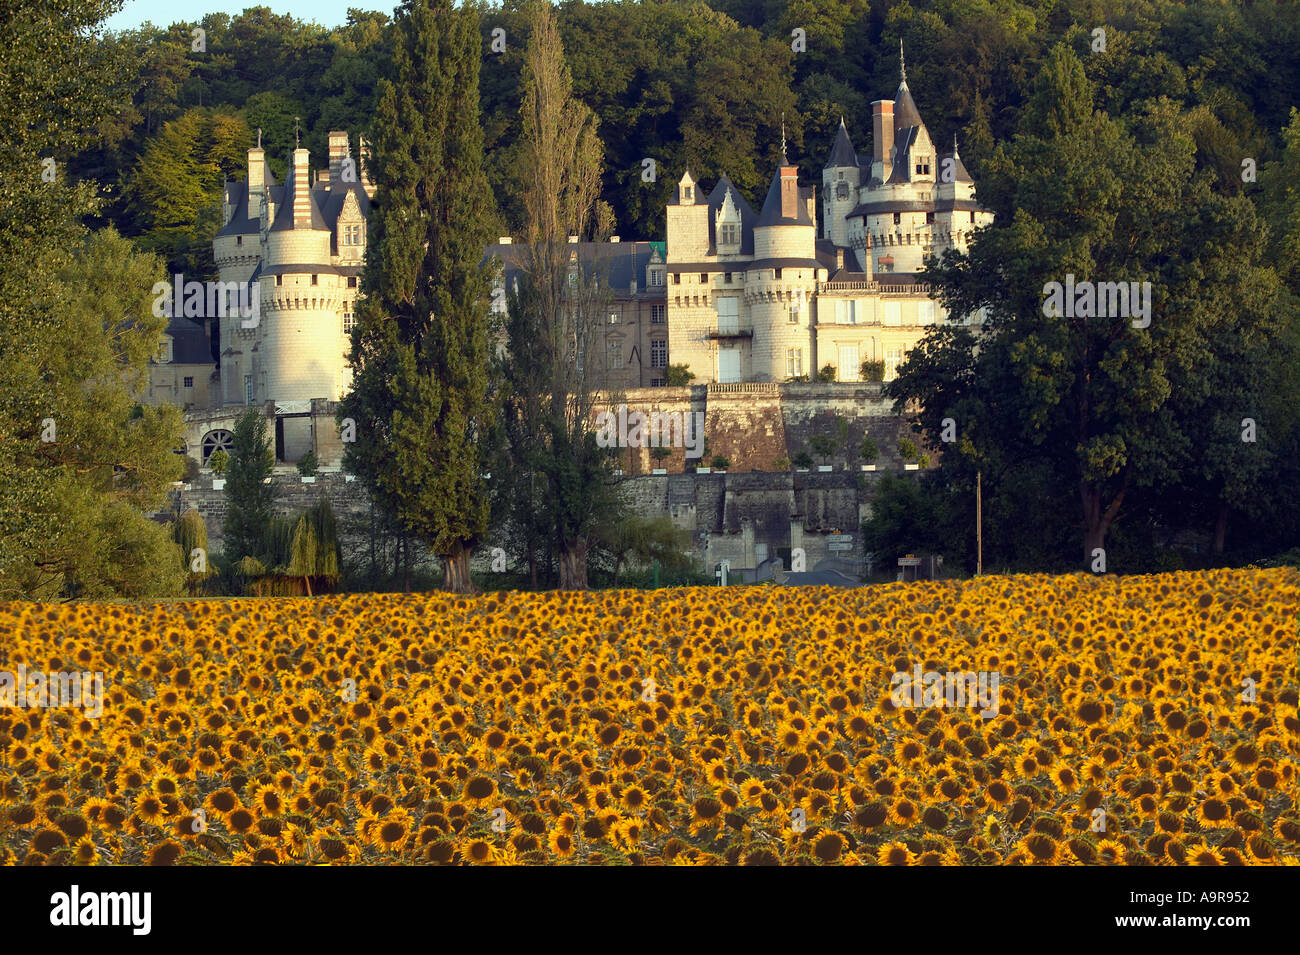 Chateau Usse France with sunflowers in evening sun - Stock Image